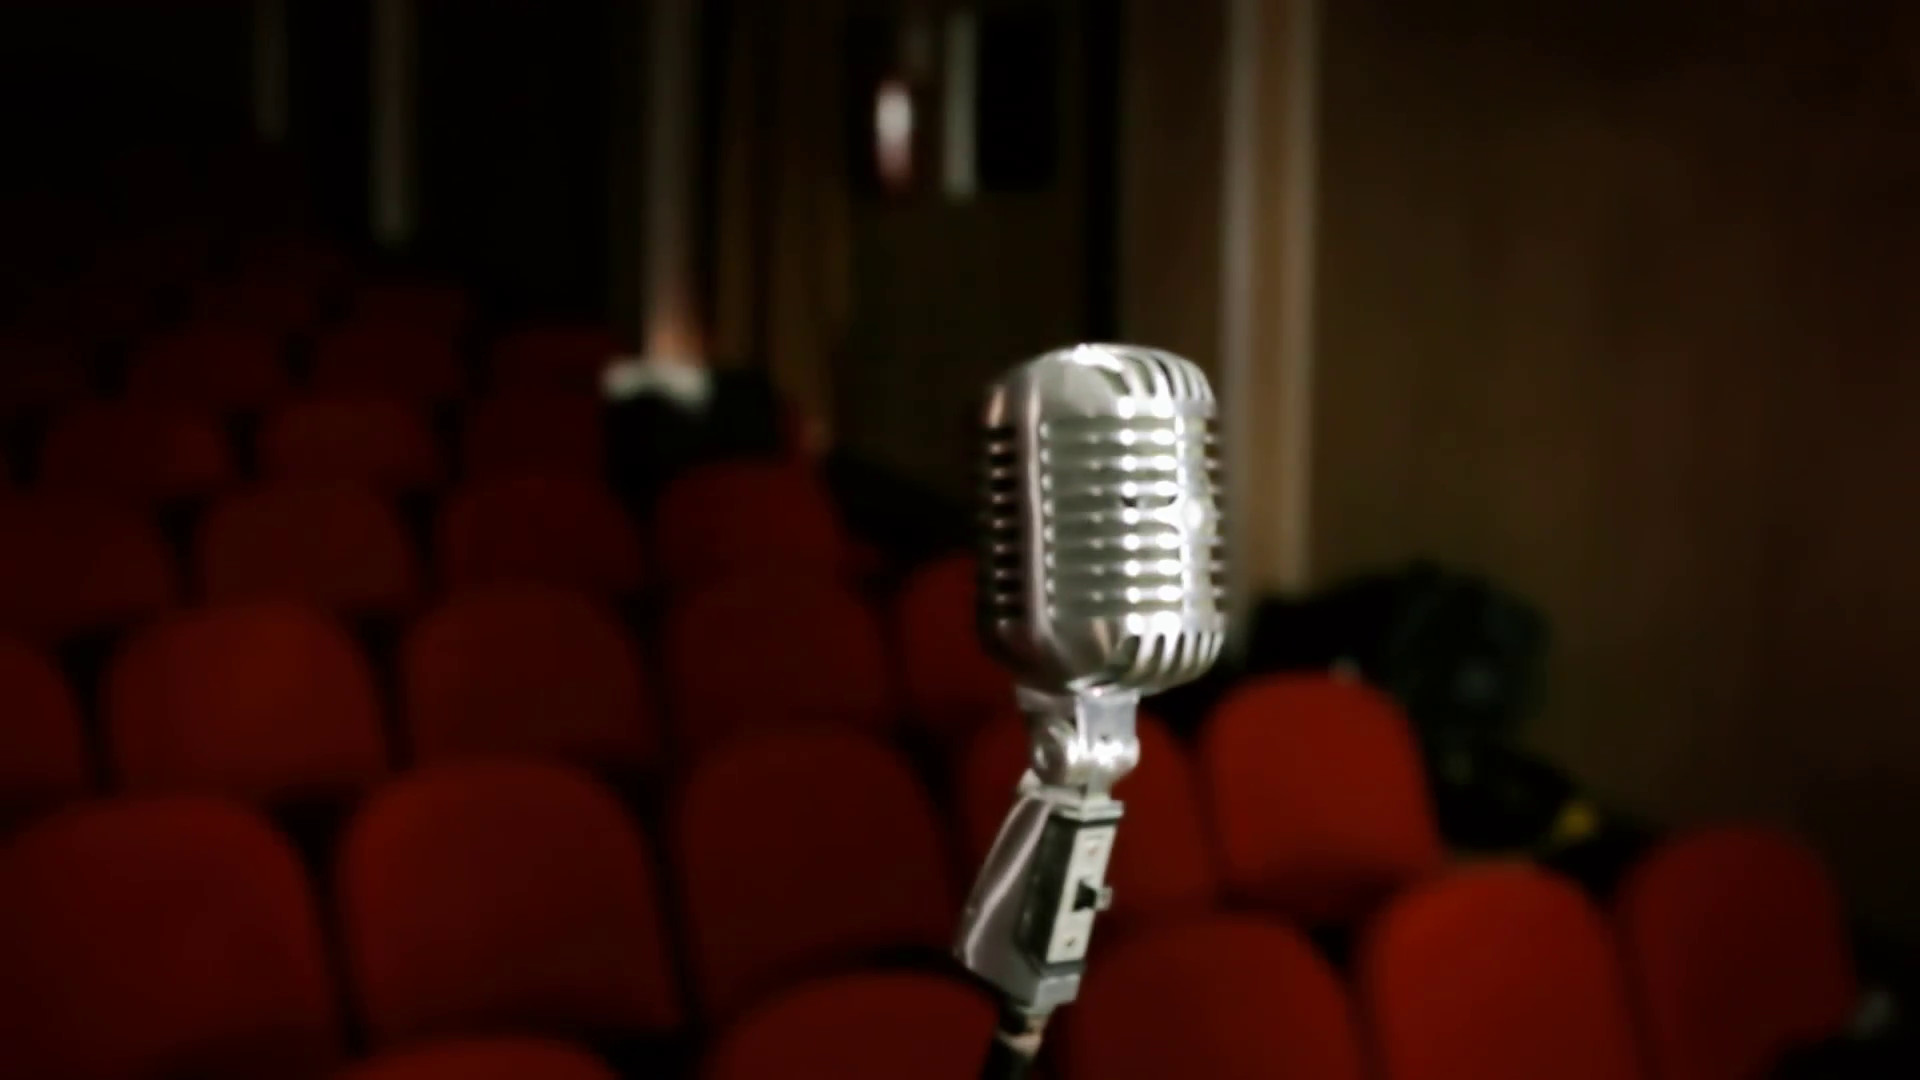 1920x1080 Microphone vintage theater red. A retro vintage shiny microphone on the  stage of a theater or cinema. Red seats in the background.